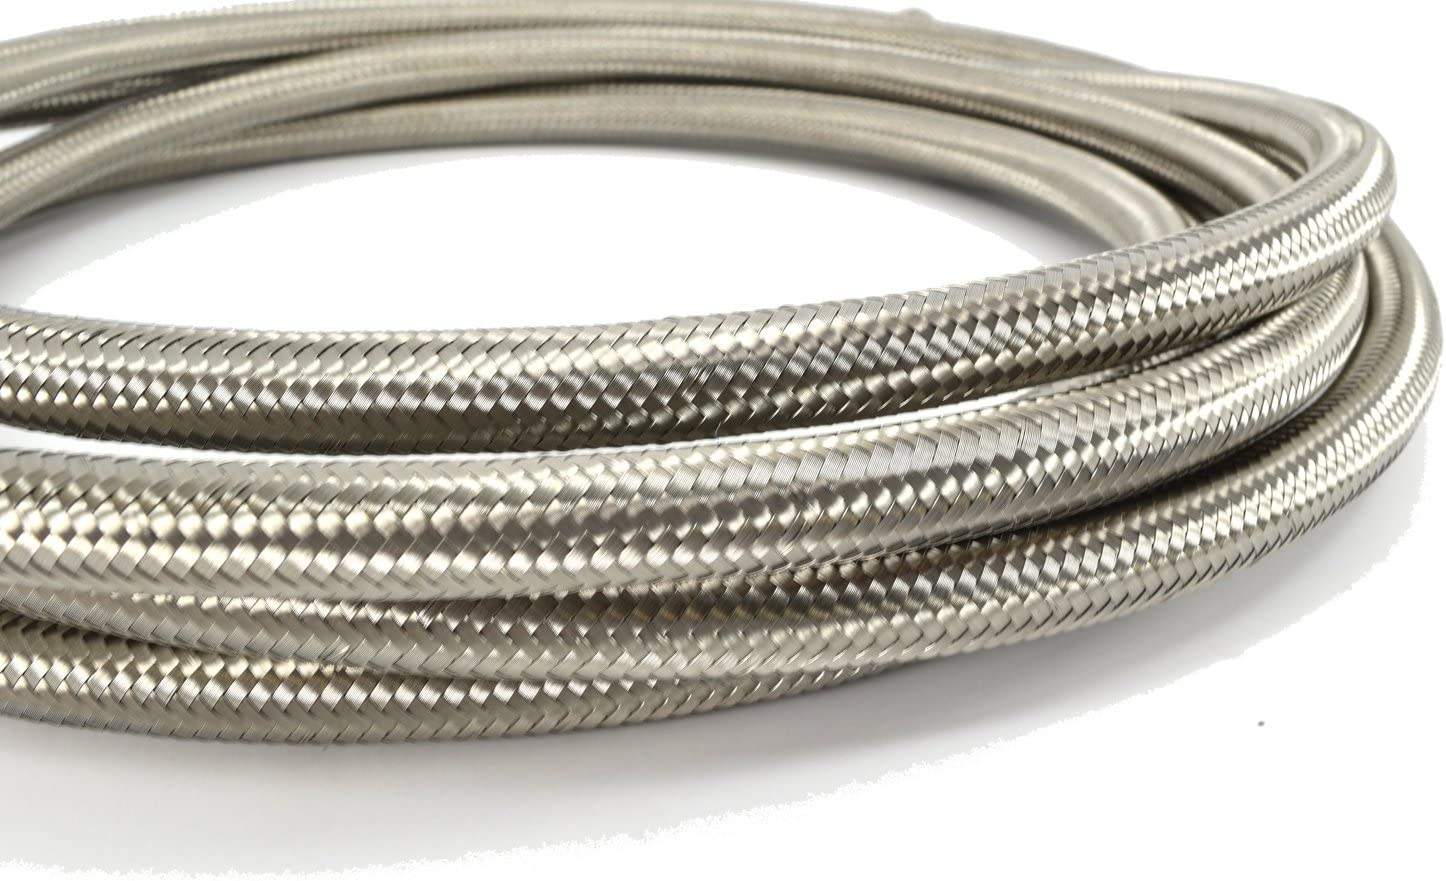 PTFE Braided Stainless Steel Lines per ft. -6 AN